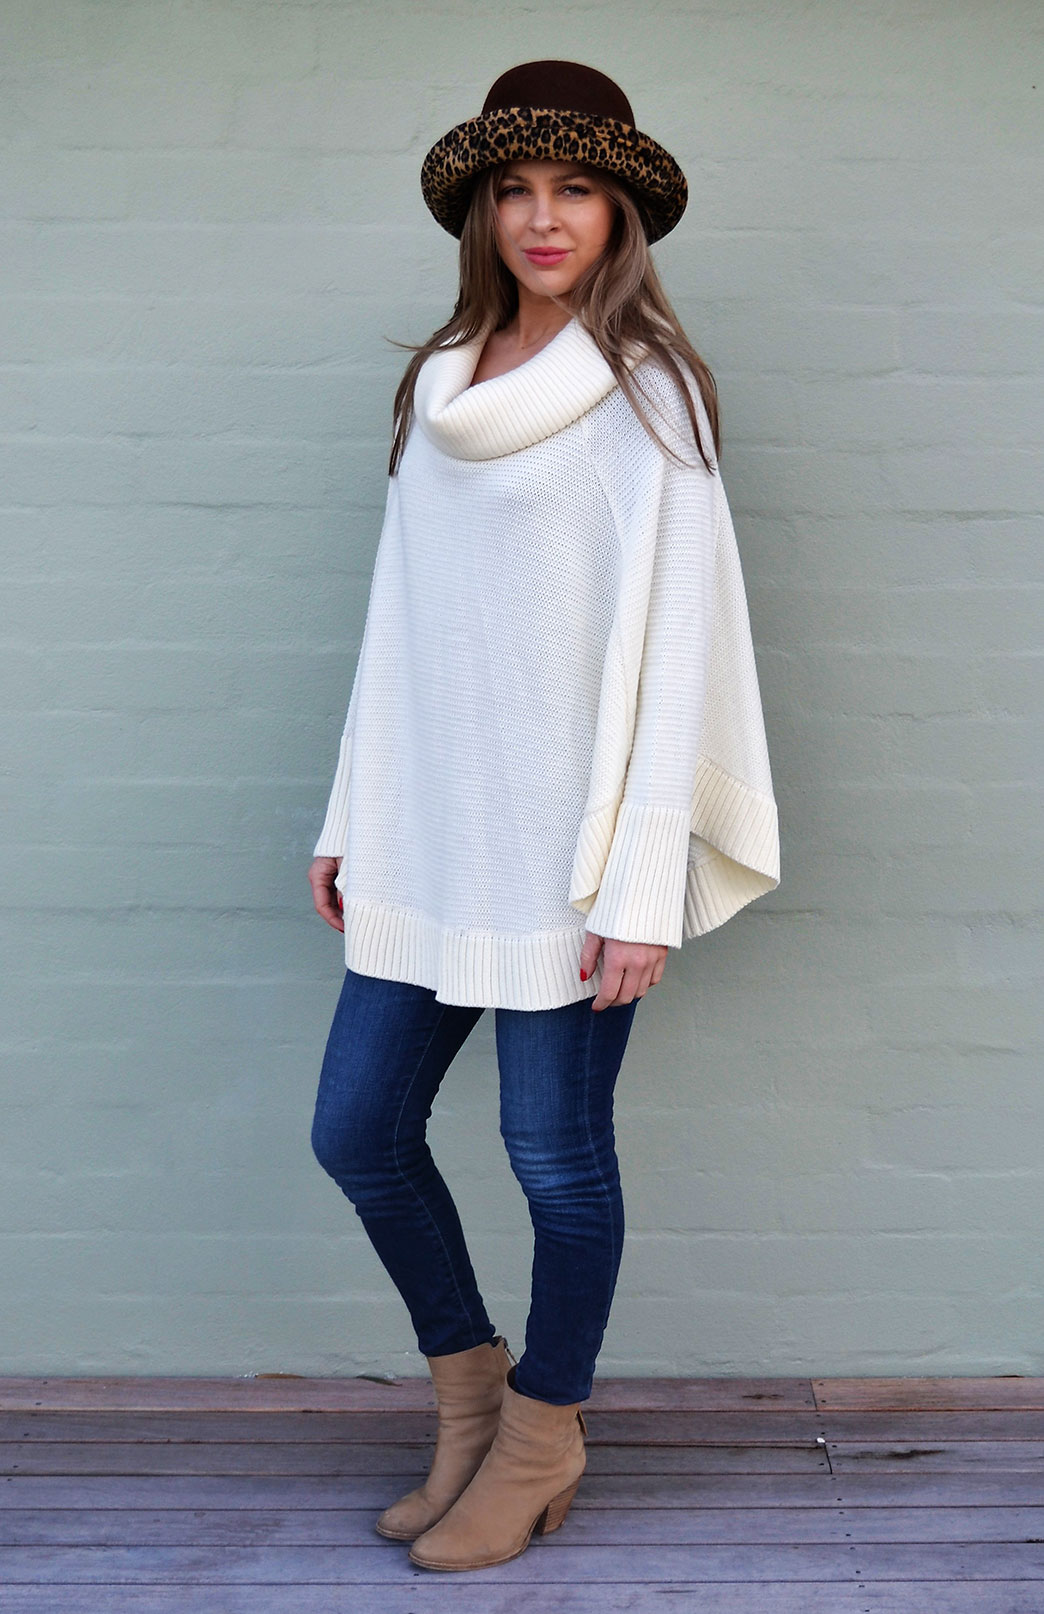 Chunky Cowl Neck Poncho with Sleeves - Women's Ivory Wool Poncho with sleeves and cowl neck line - Smitten Merino Tasmania Australia